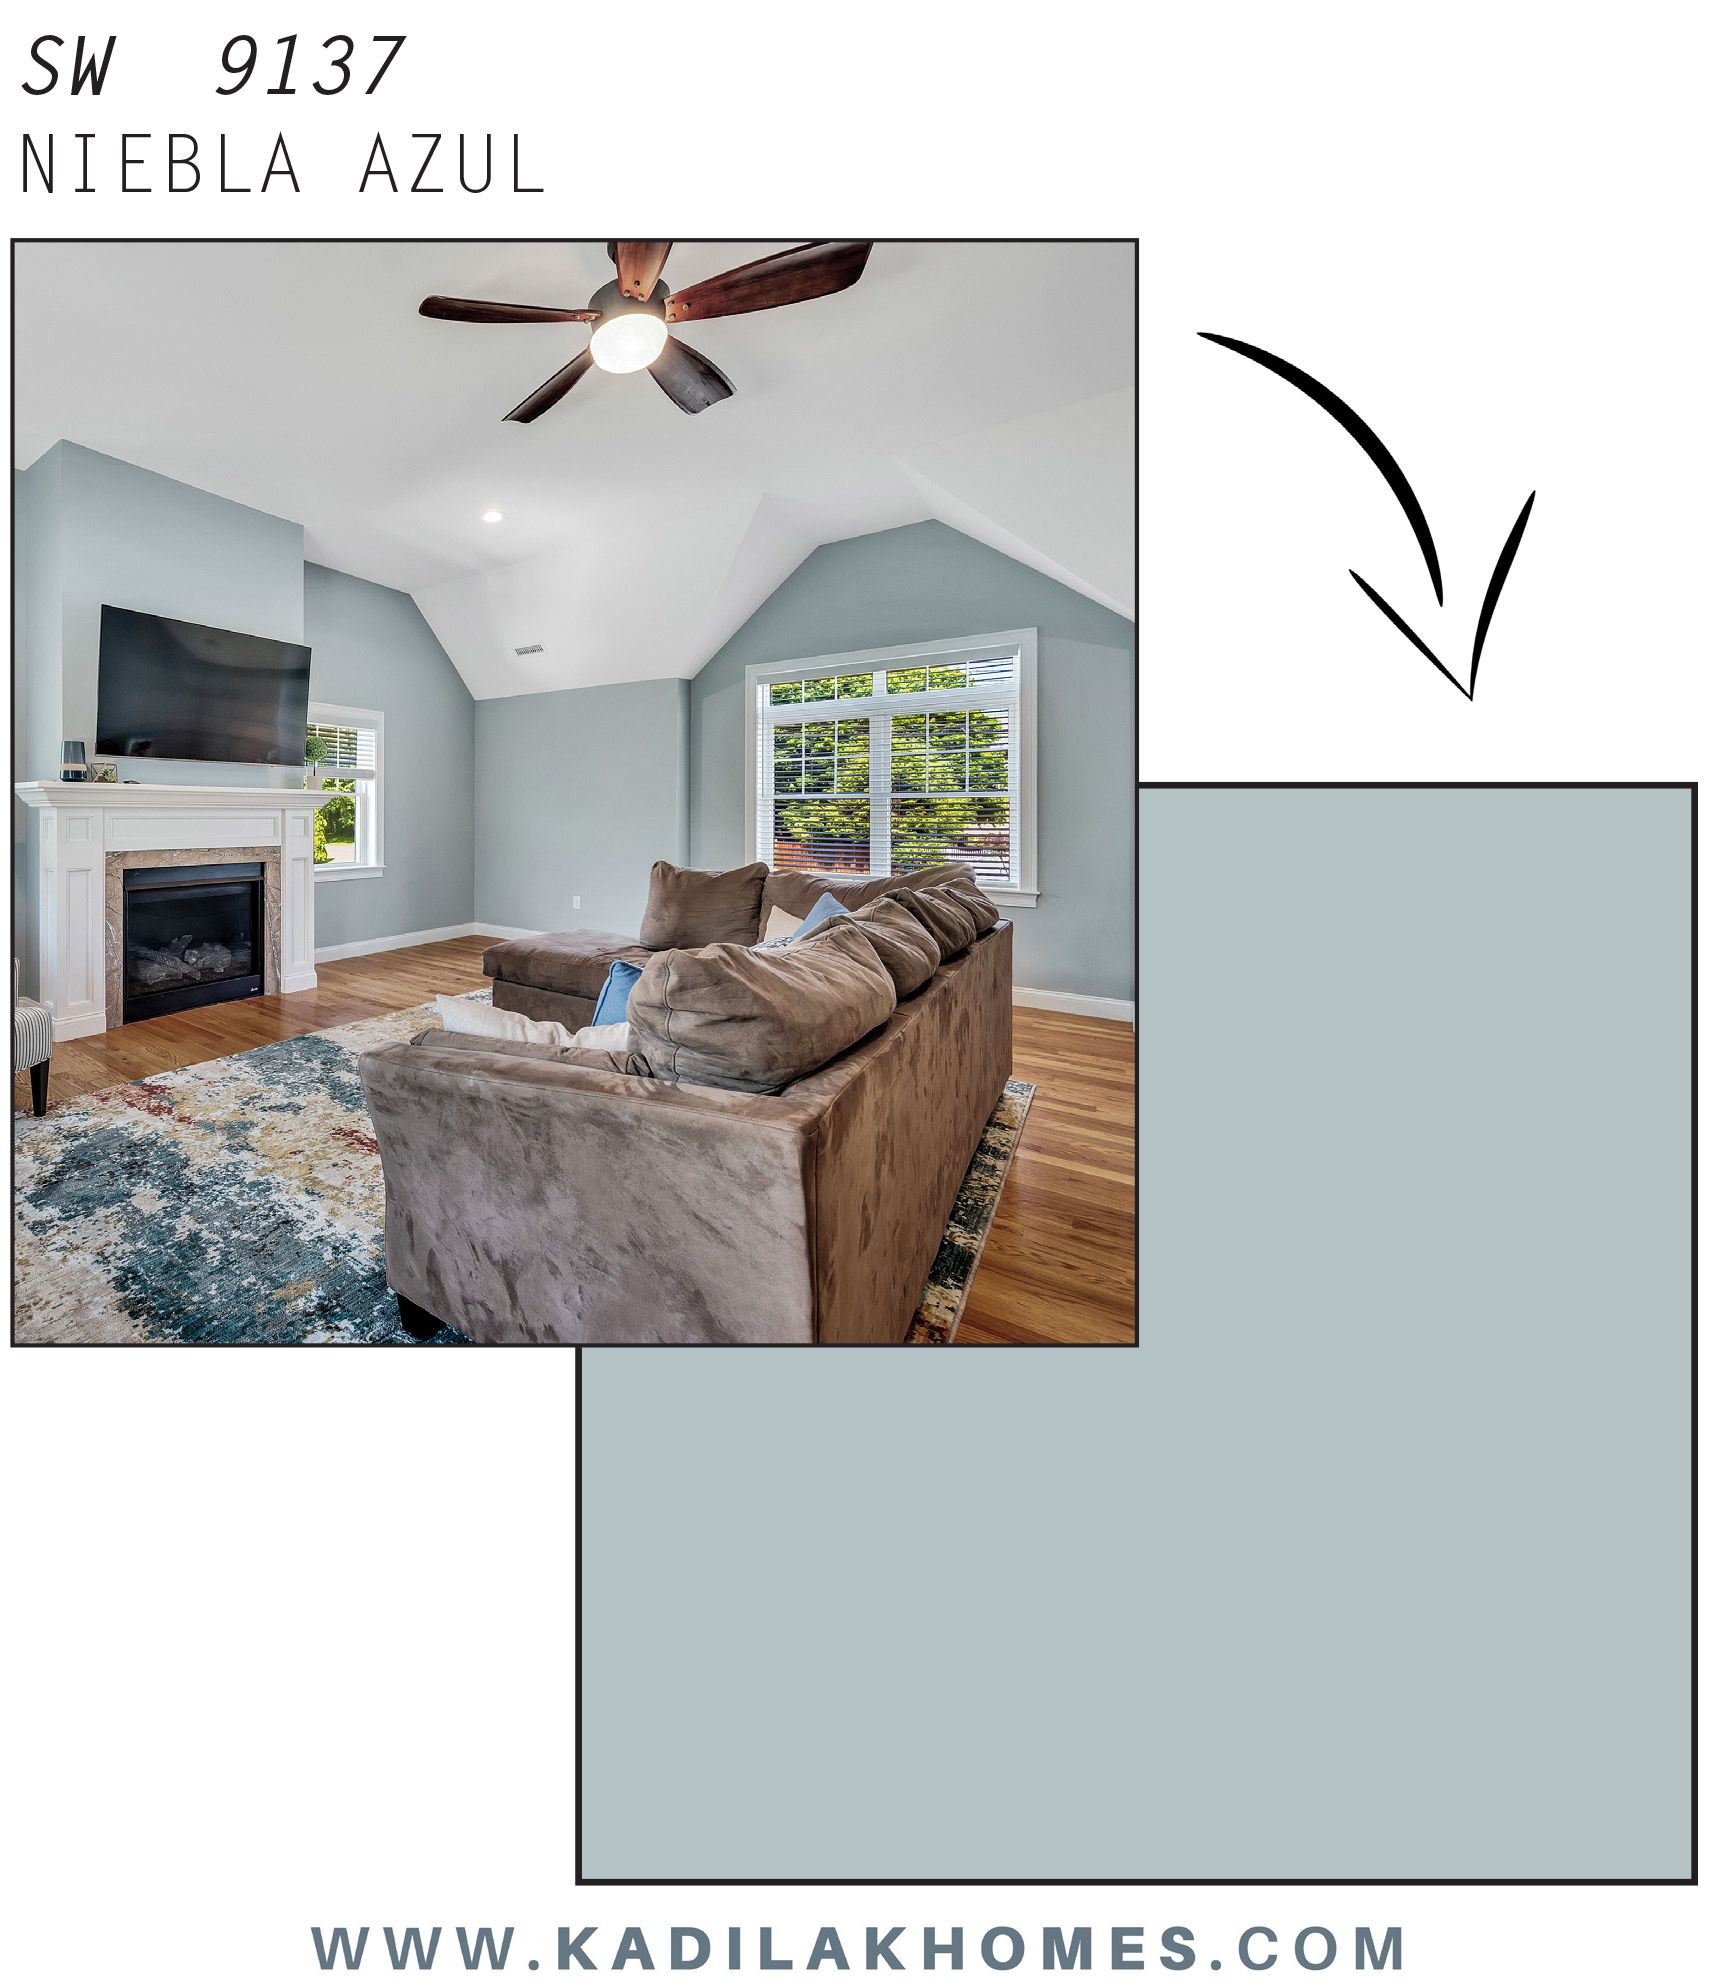 Top 10 Sherwin Williams Paint Colors #indoorpaintcolors